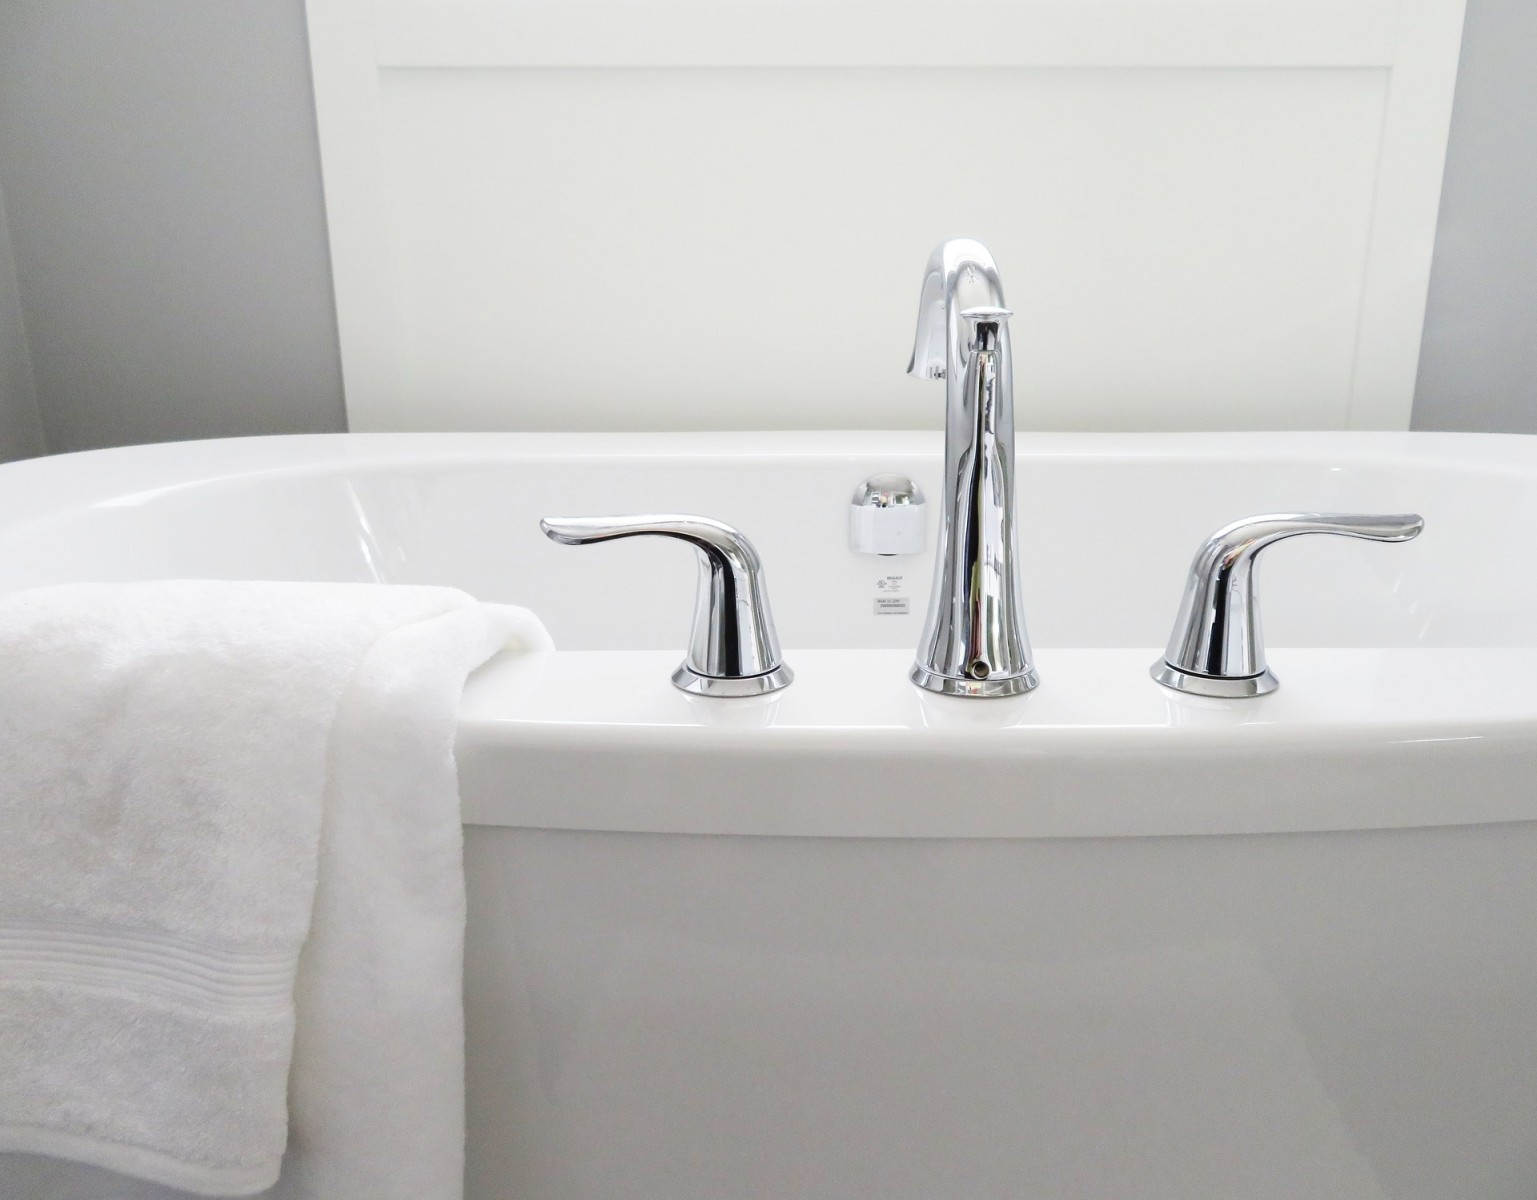 Timeless Bathroom Design: Tips from the Experts - Cheviot Products